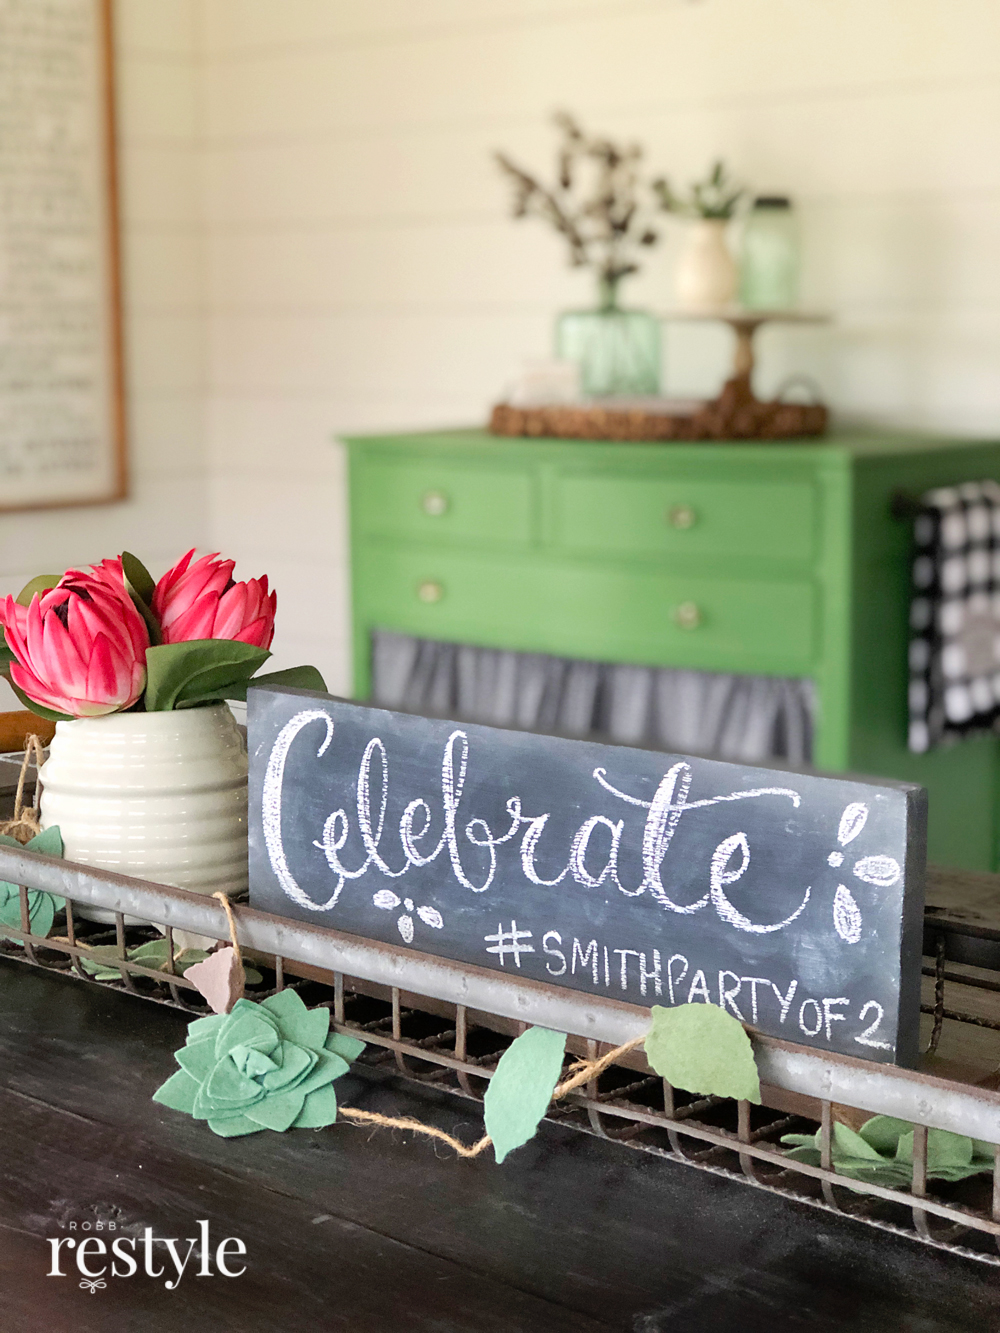 Celebrate Chalkboard Sign Idea